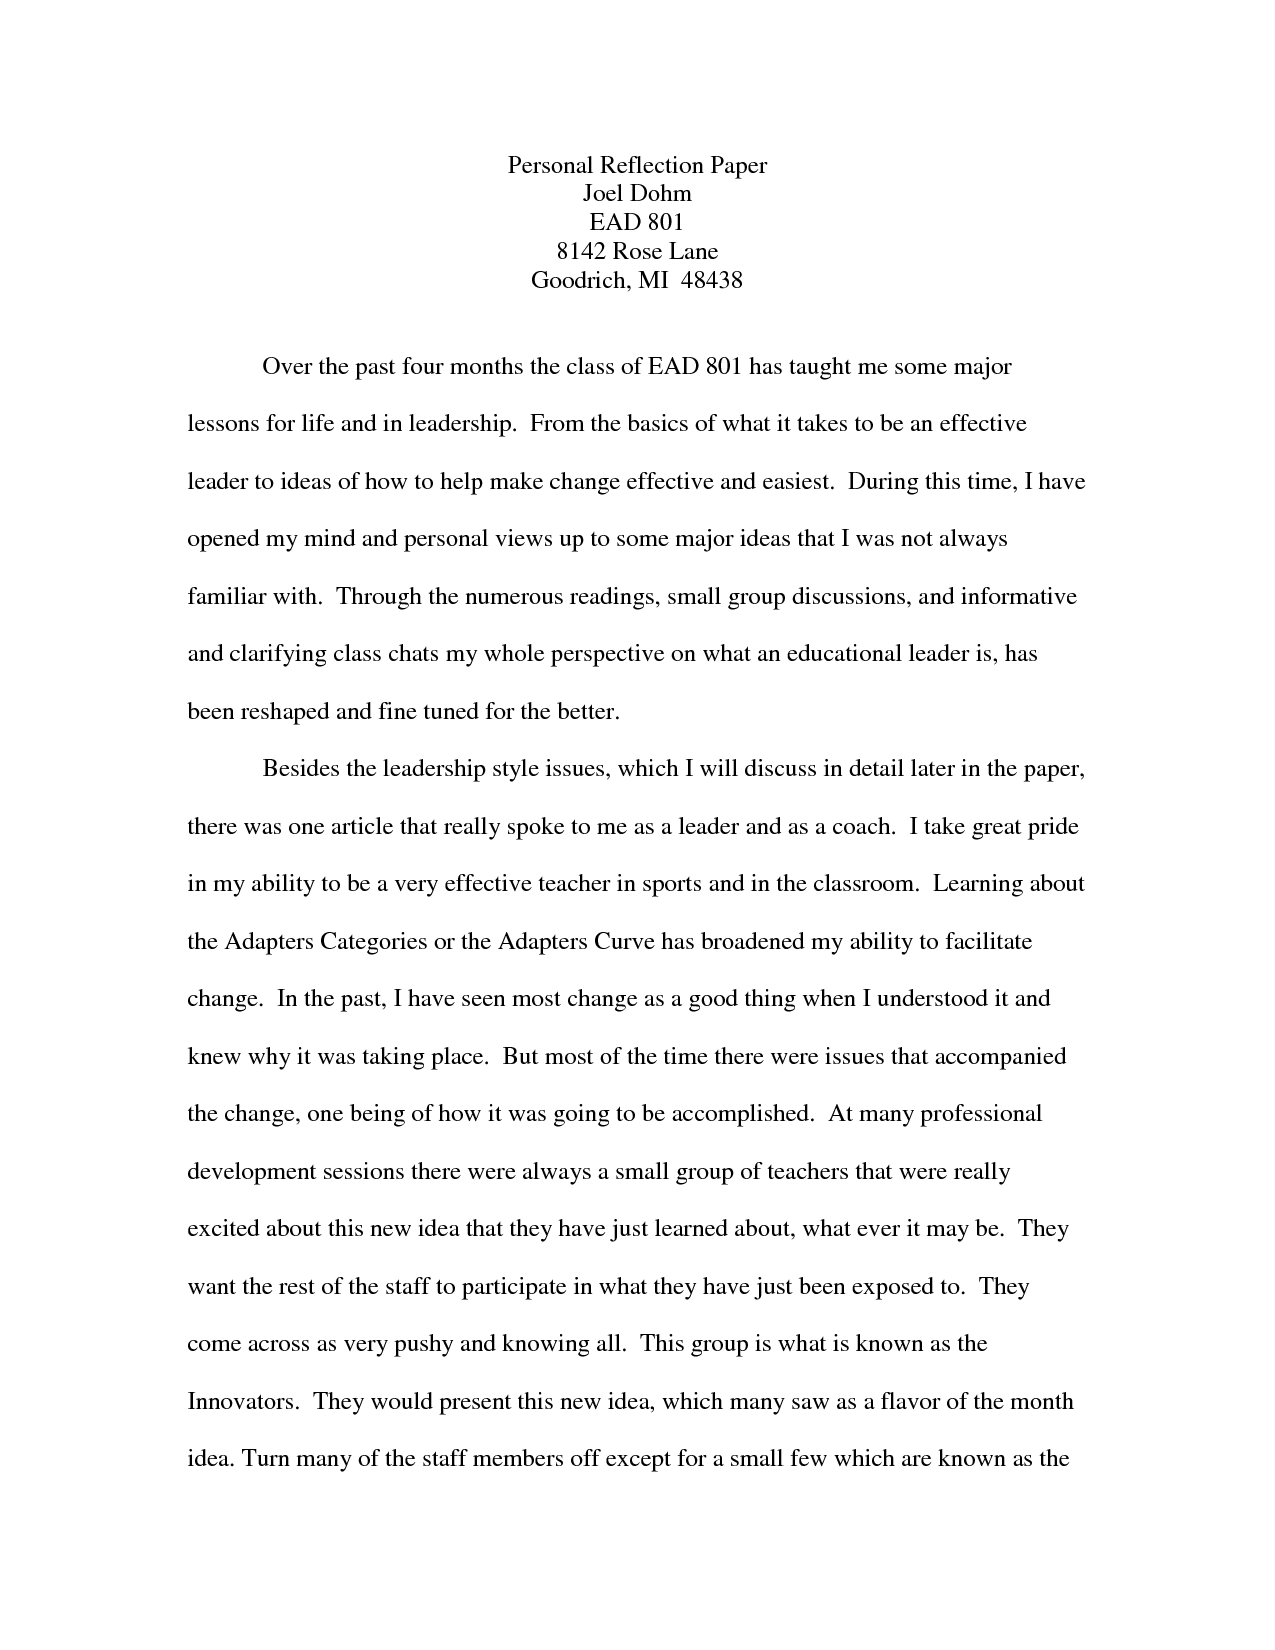 006 Personal Reflection Essay Examples Paper Example Ggnje Of Reflective Essays On Group Work For English Using Gibbs In Nursing Free Challenging Model Writing Topics Mental Stirring National 5 Anxiety Full